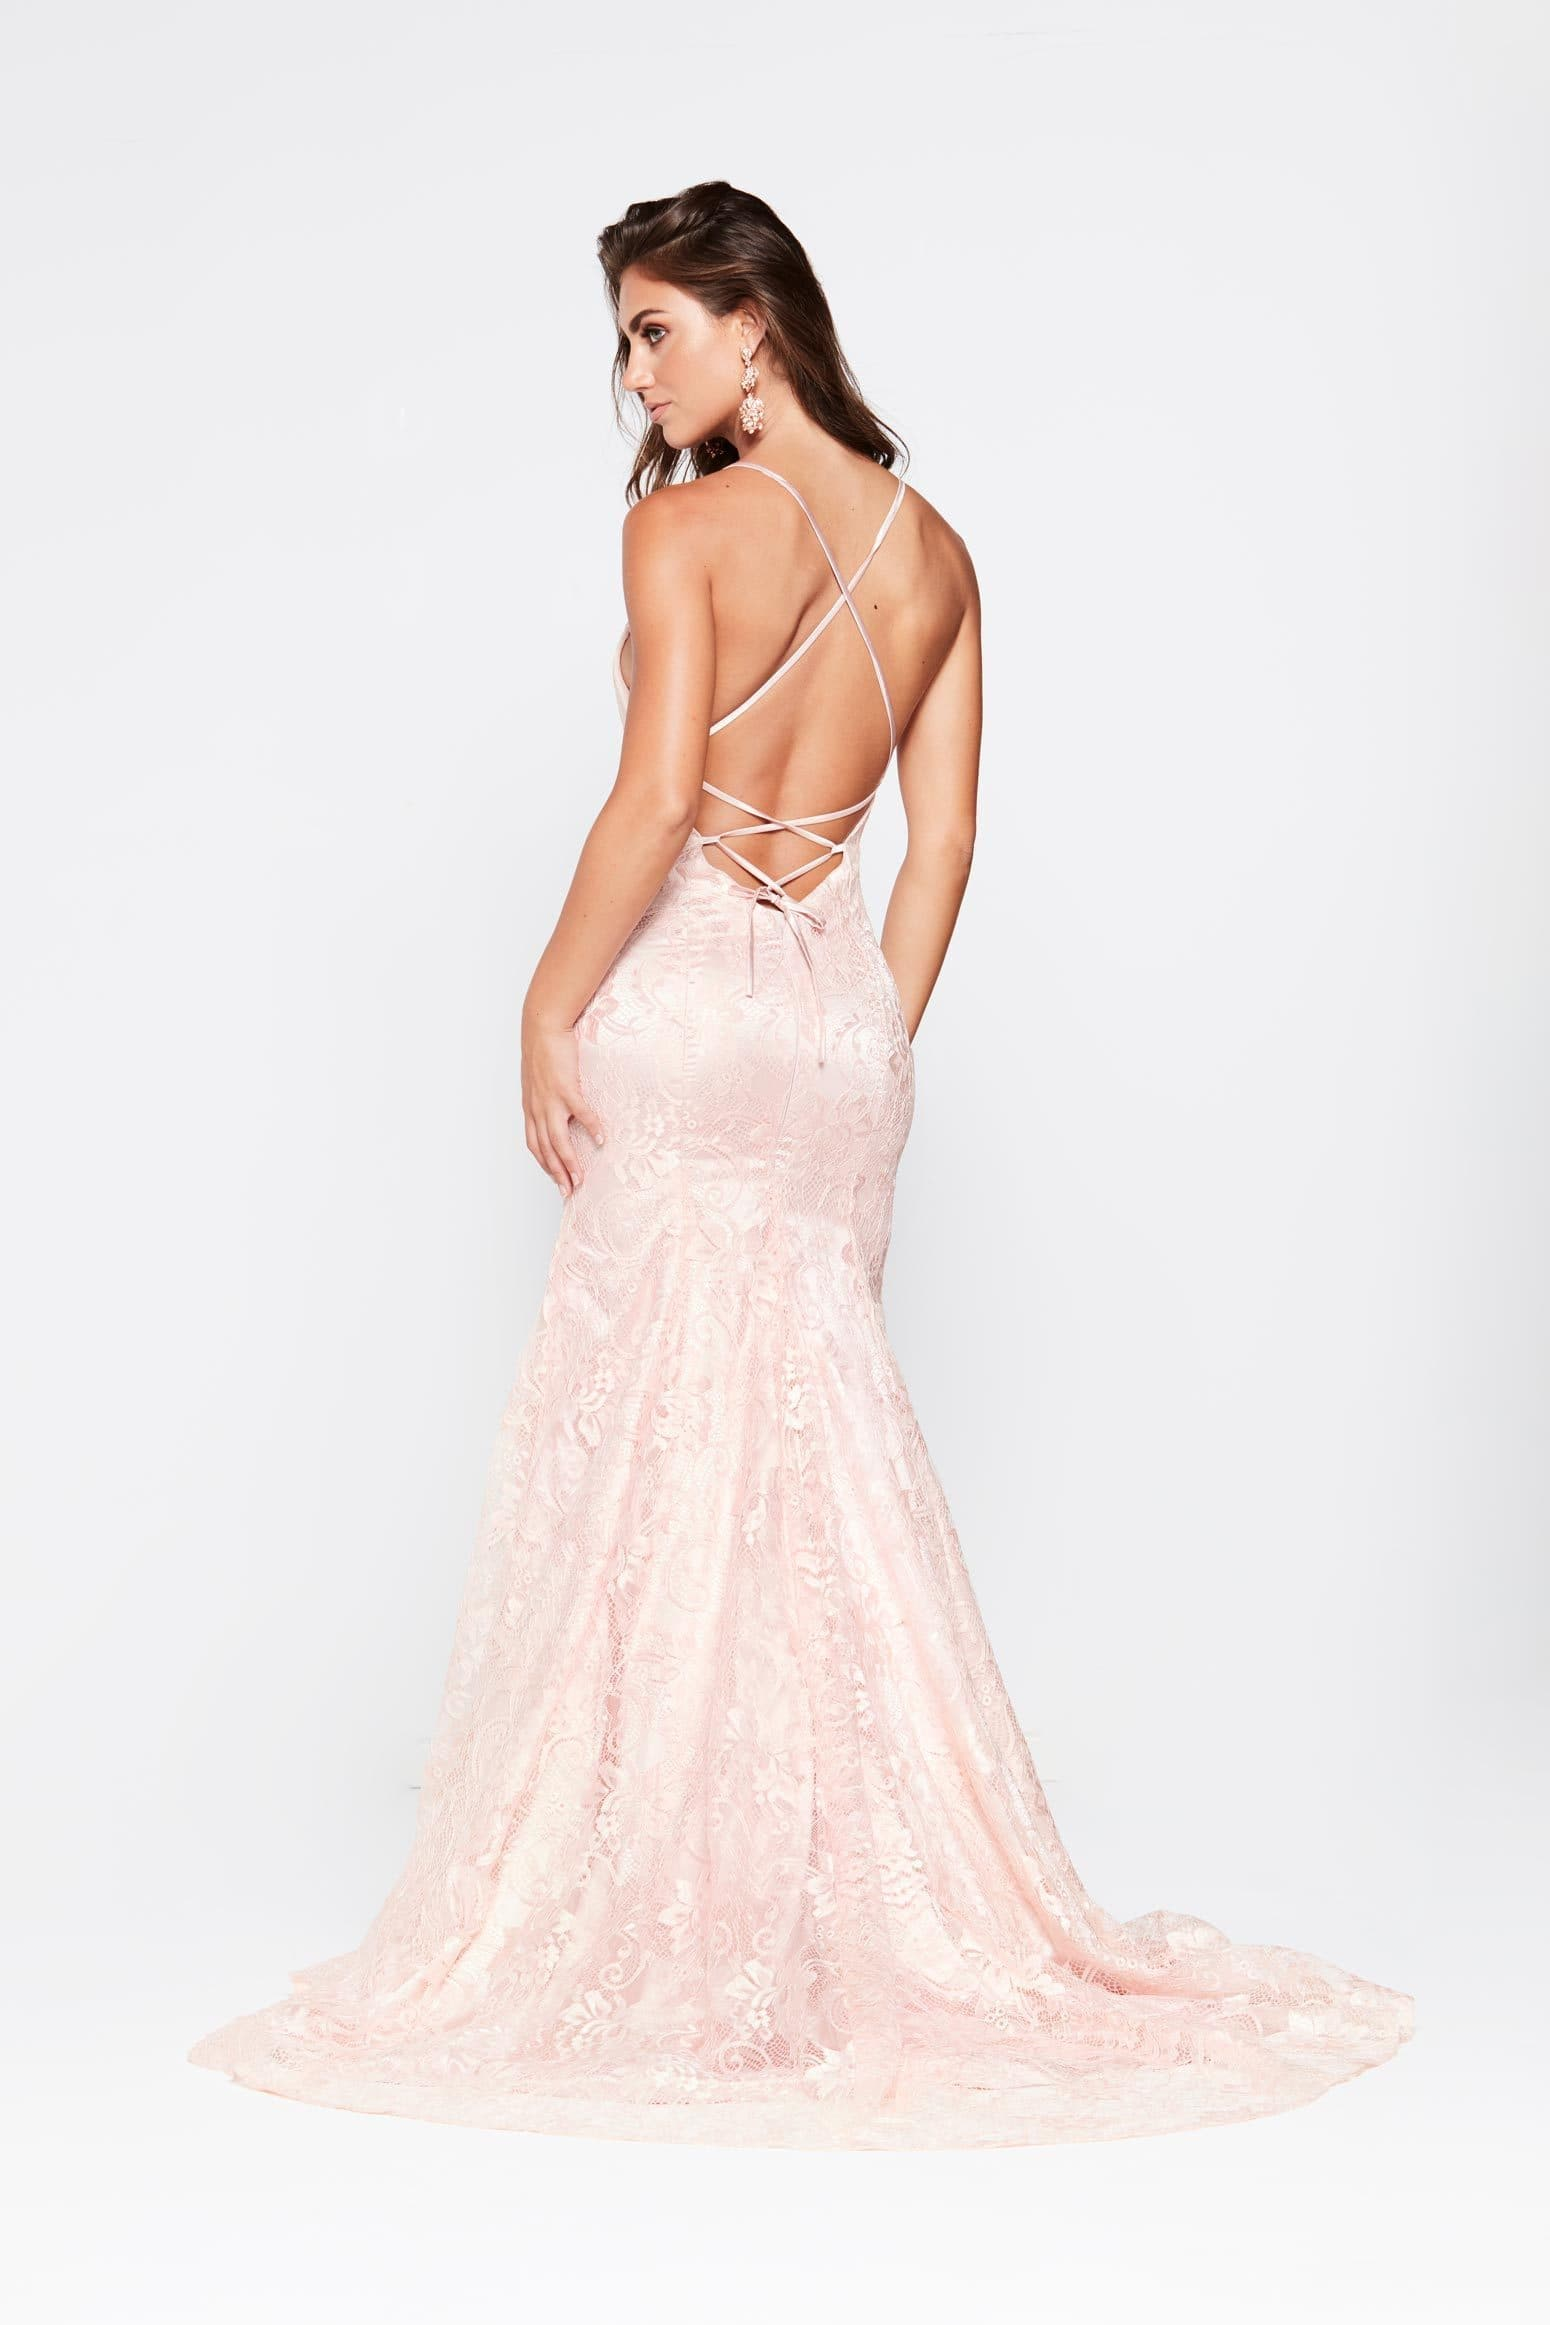 A&N Aisha Gown - Blush Mermaid Gown with Lace up Back